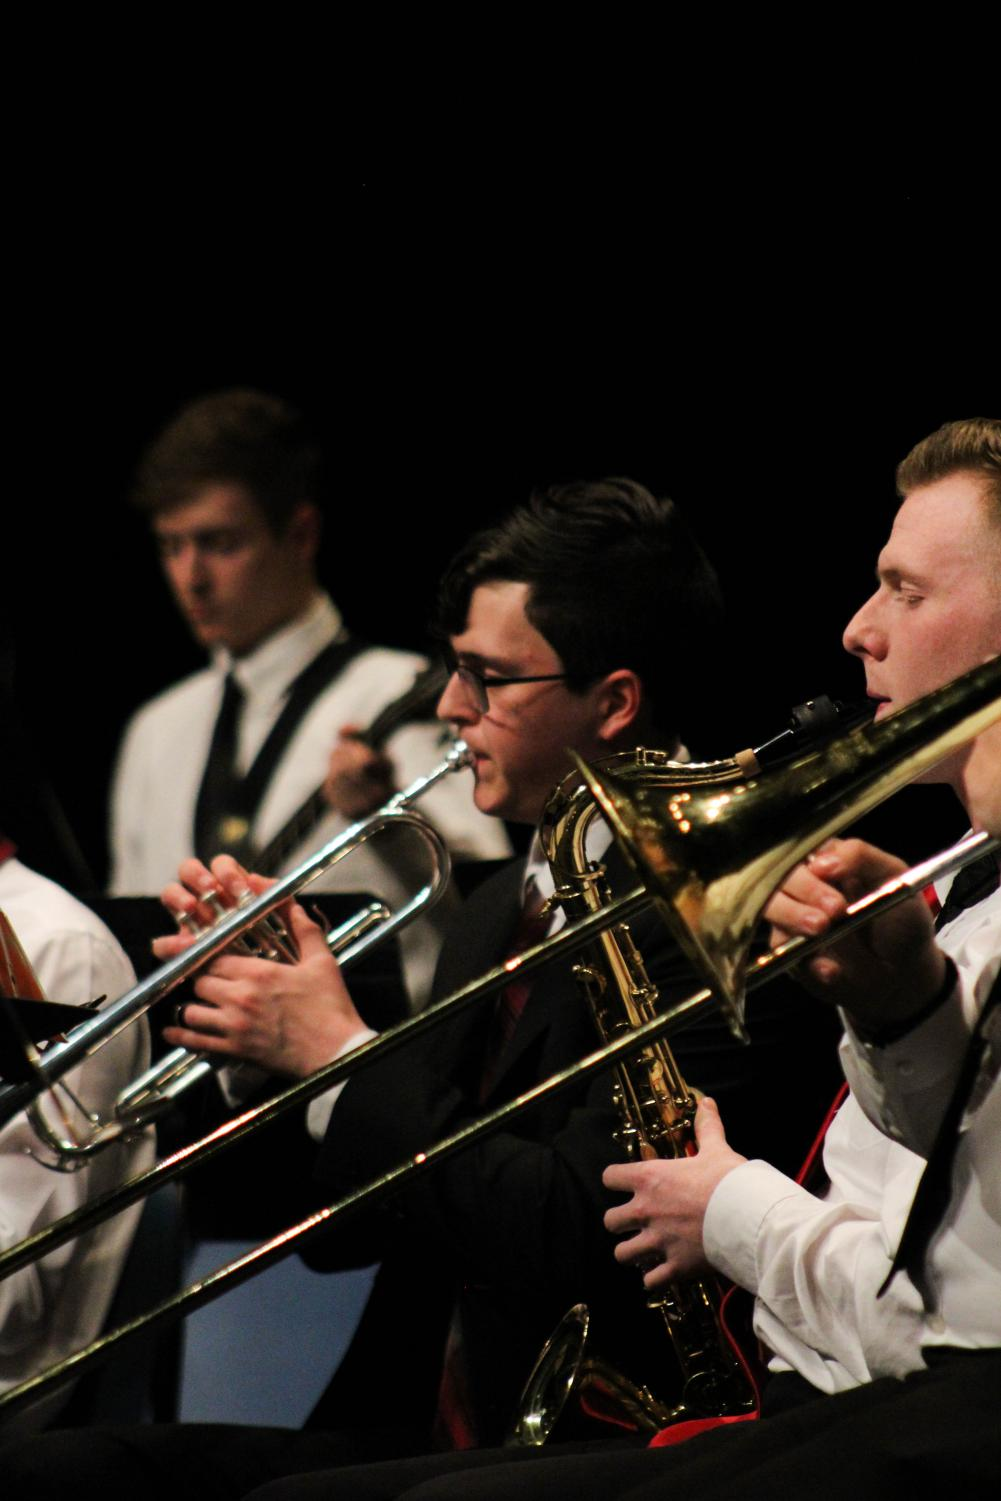 Ryan+Moffet%2C+of+Yates+Center%2C+played+the+trumpet+for+the+combined+concert.